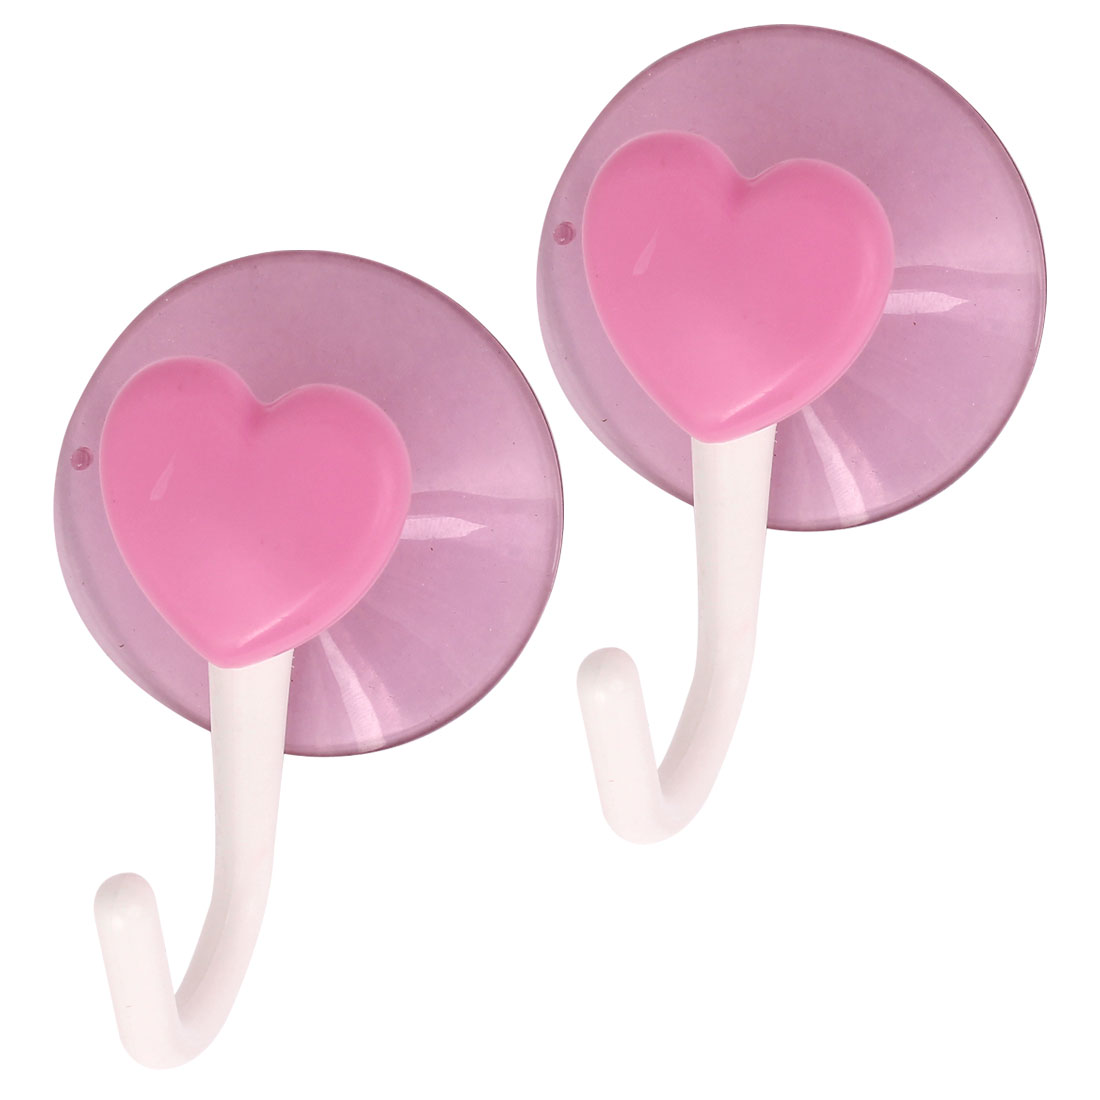 Kitchen Bath Towel Heart Shape Suction Cup Hook Wall Hangers White Pink 2 Pcs